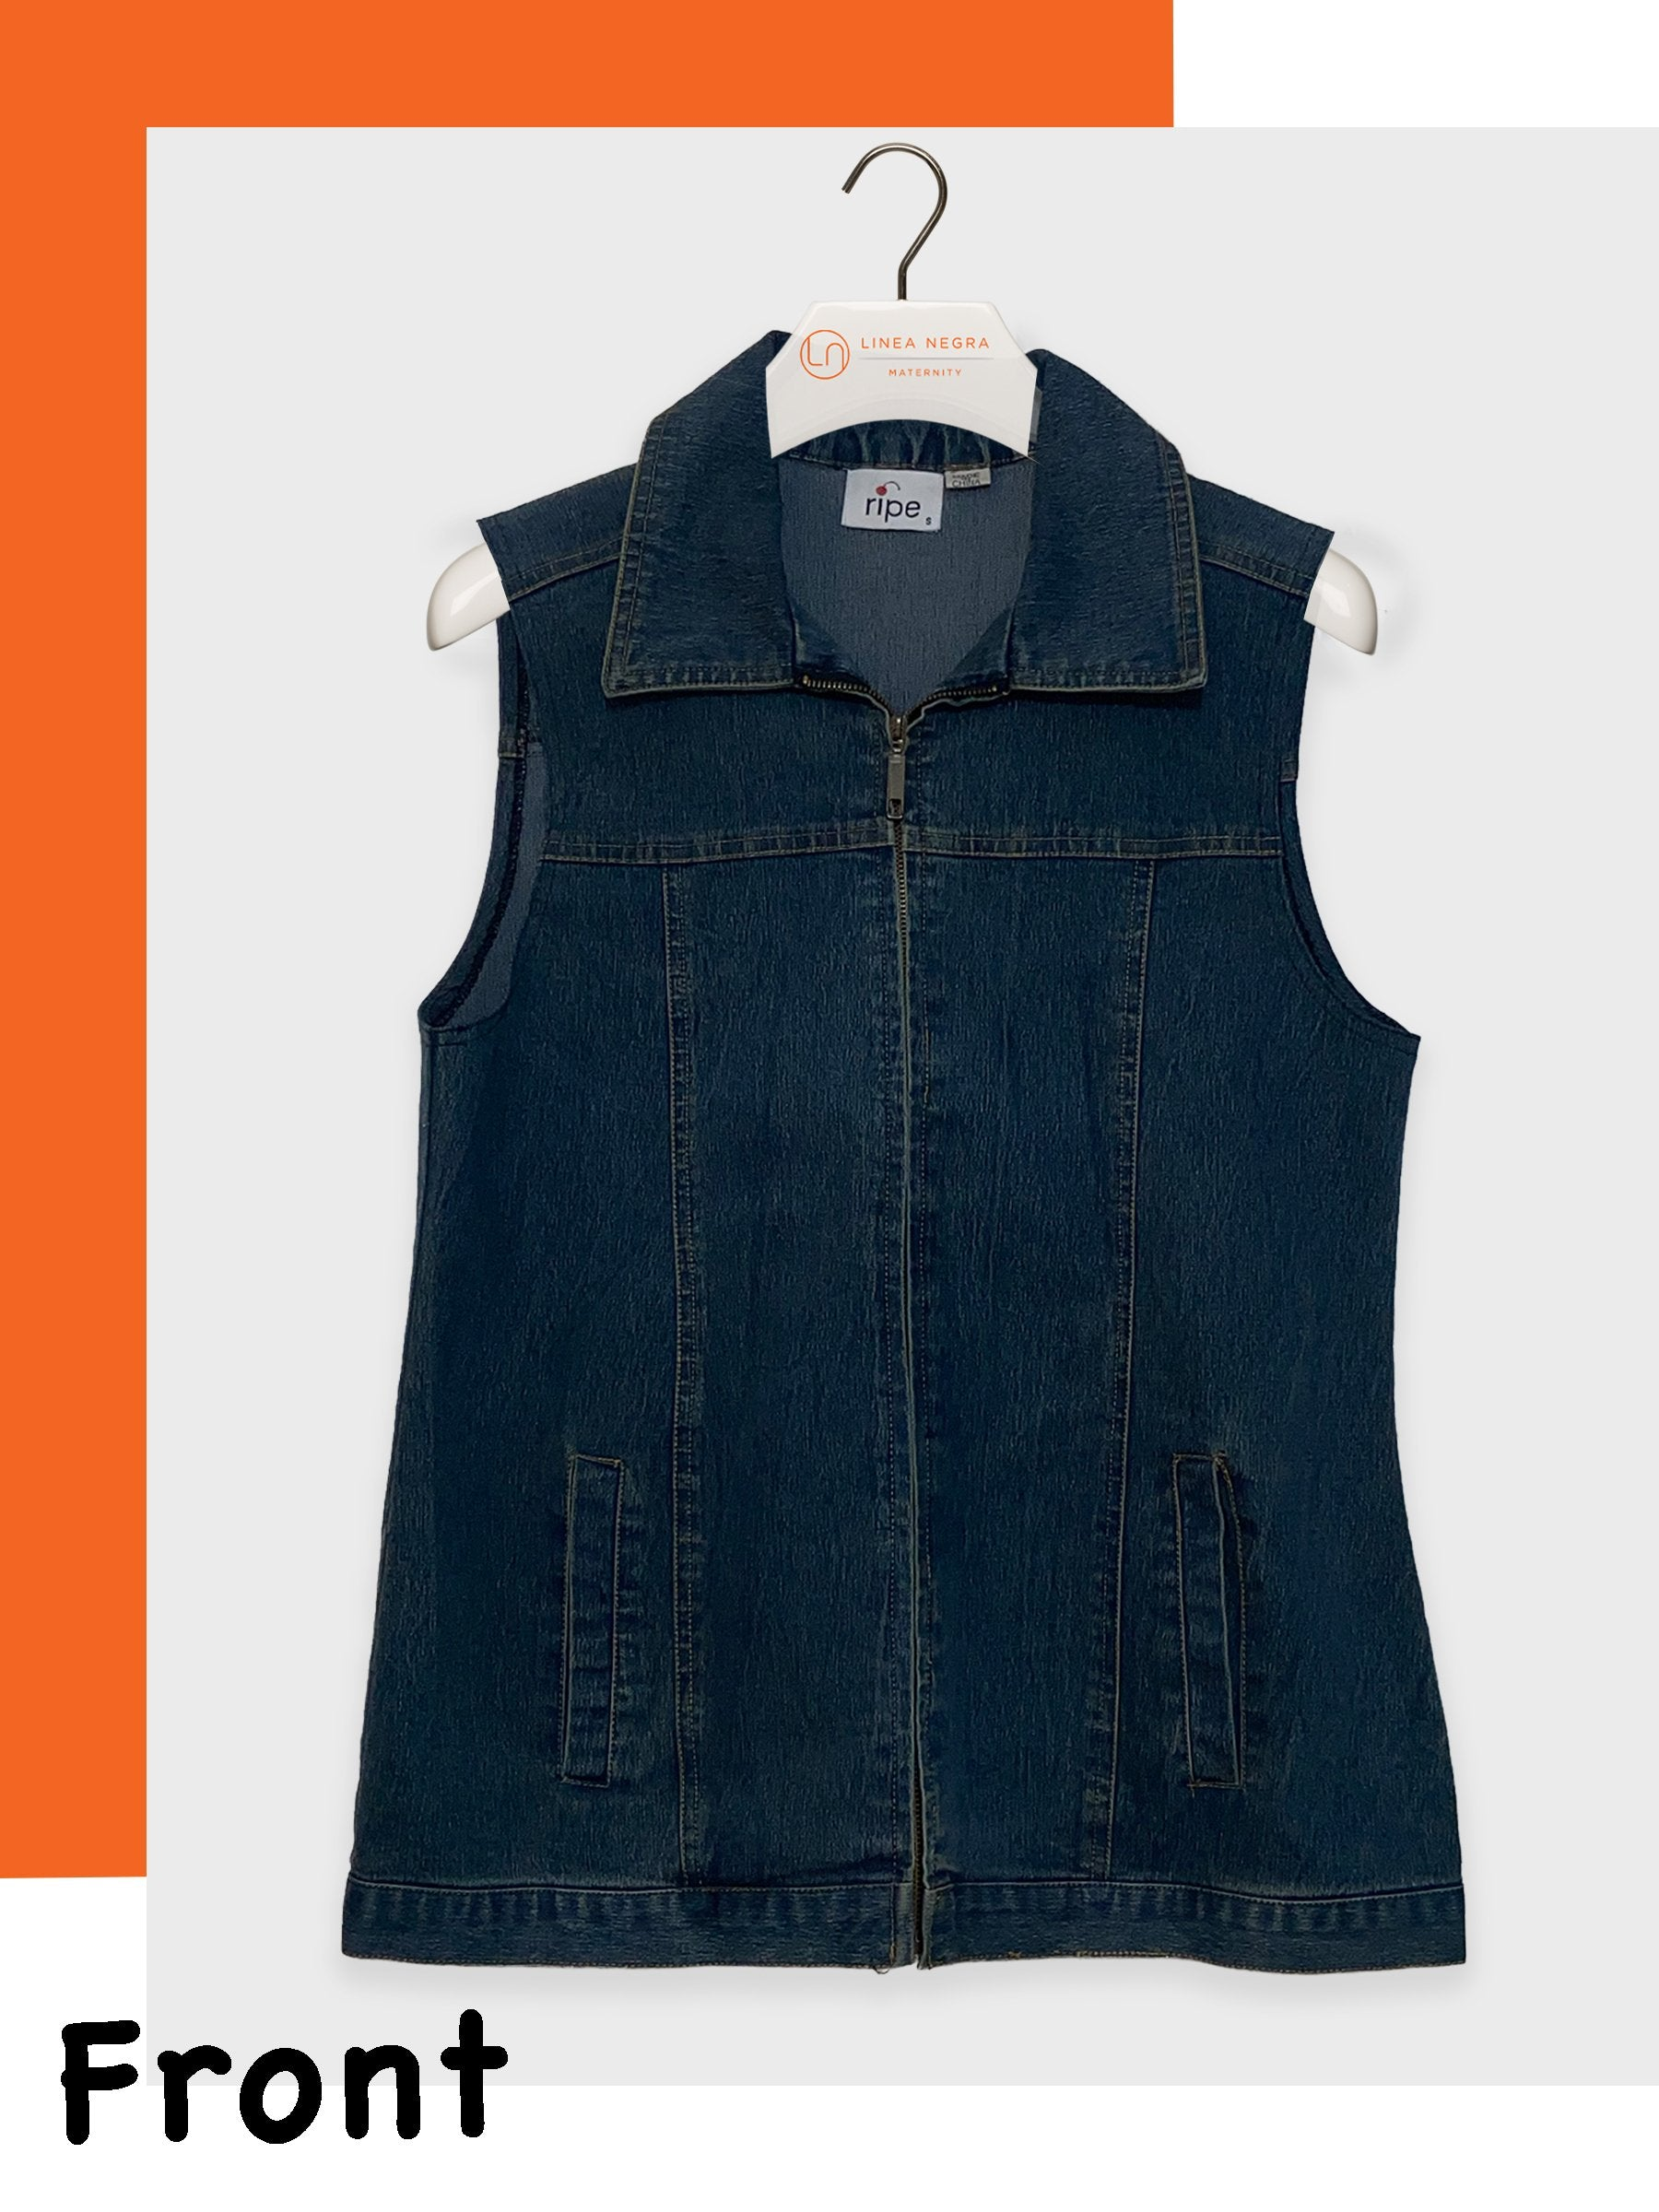 Ripe Maternity Sleeveless Denim Jacket for Pregnant Mamas